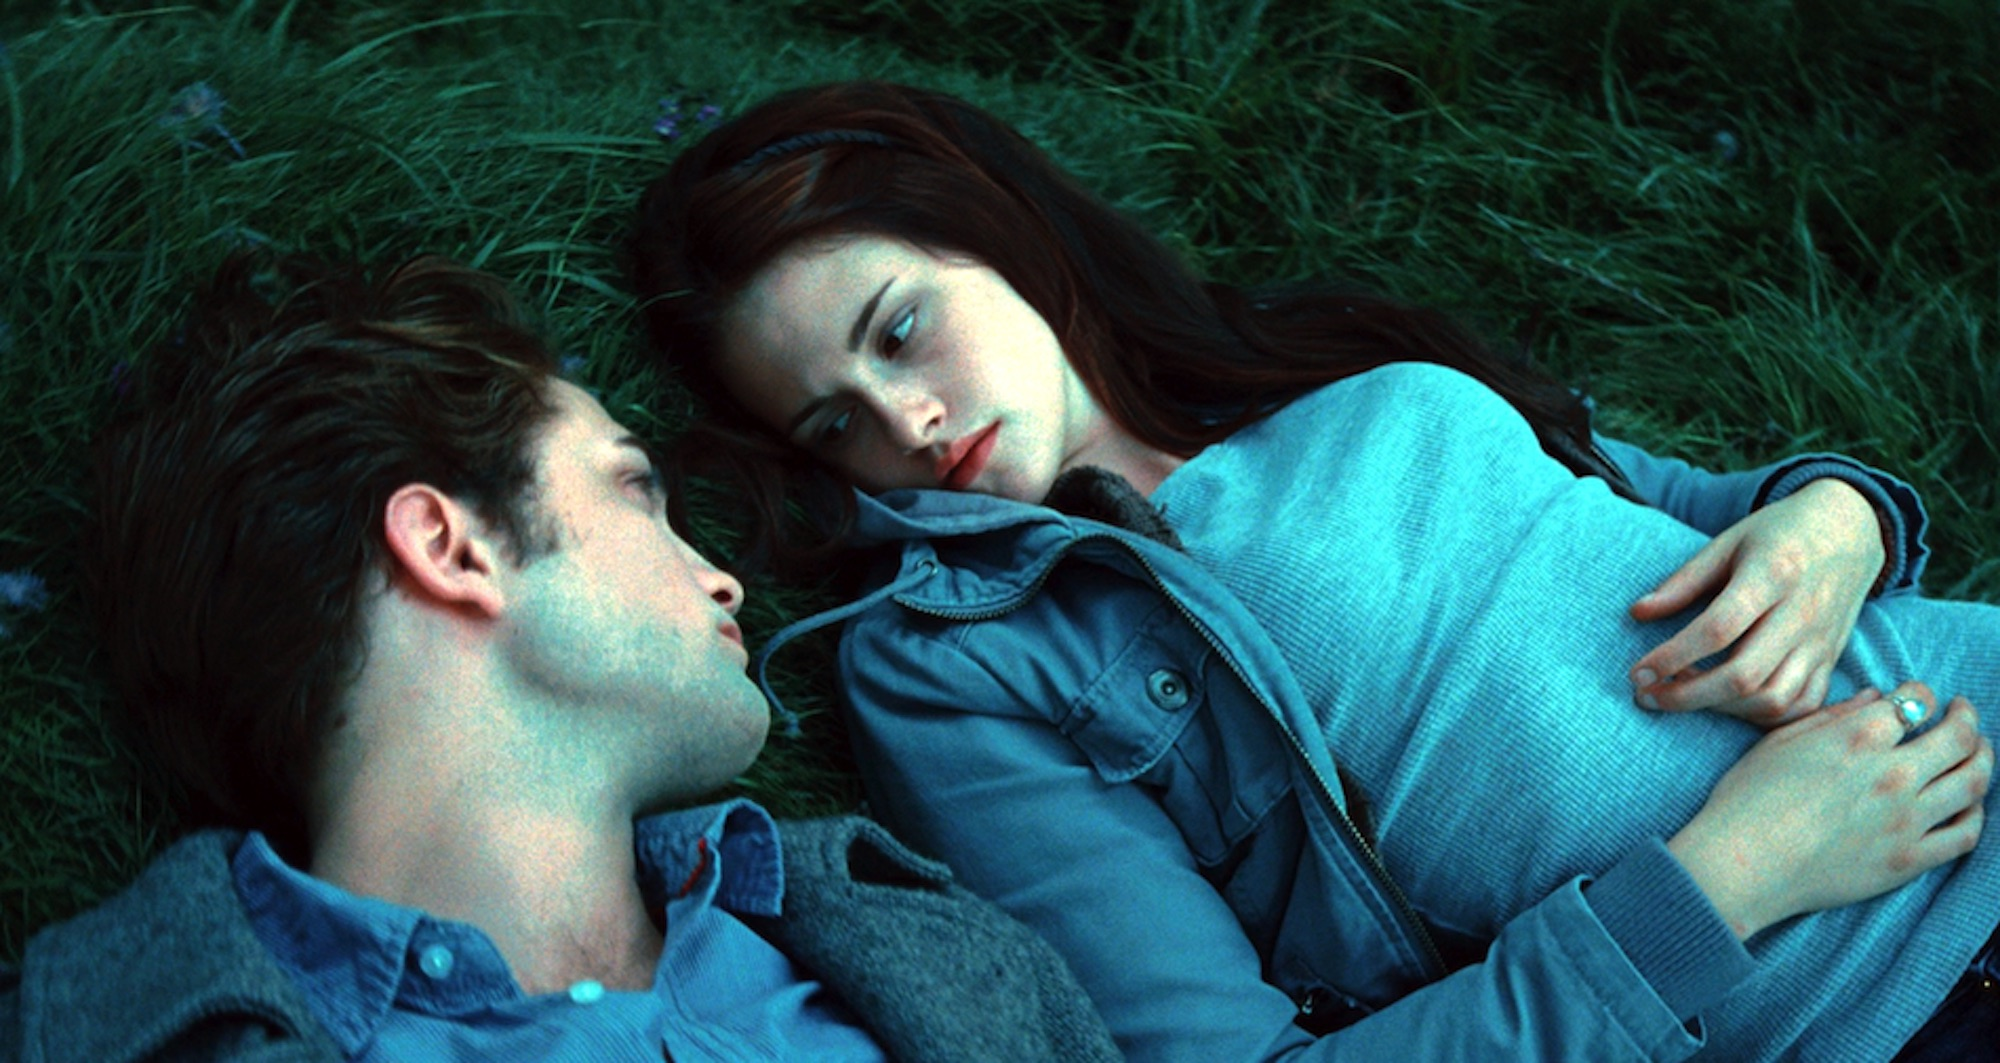 Edward Cullen (Robert Pattinson) and Bella Swan (Kristen Stewart) in 'Twilight'